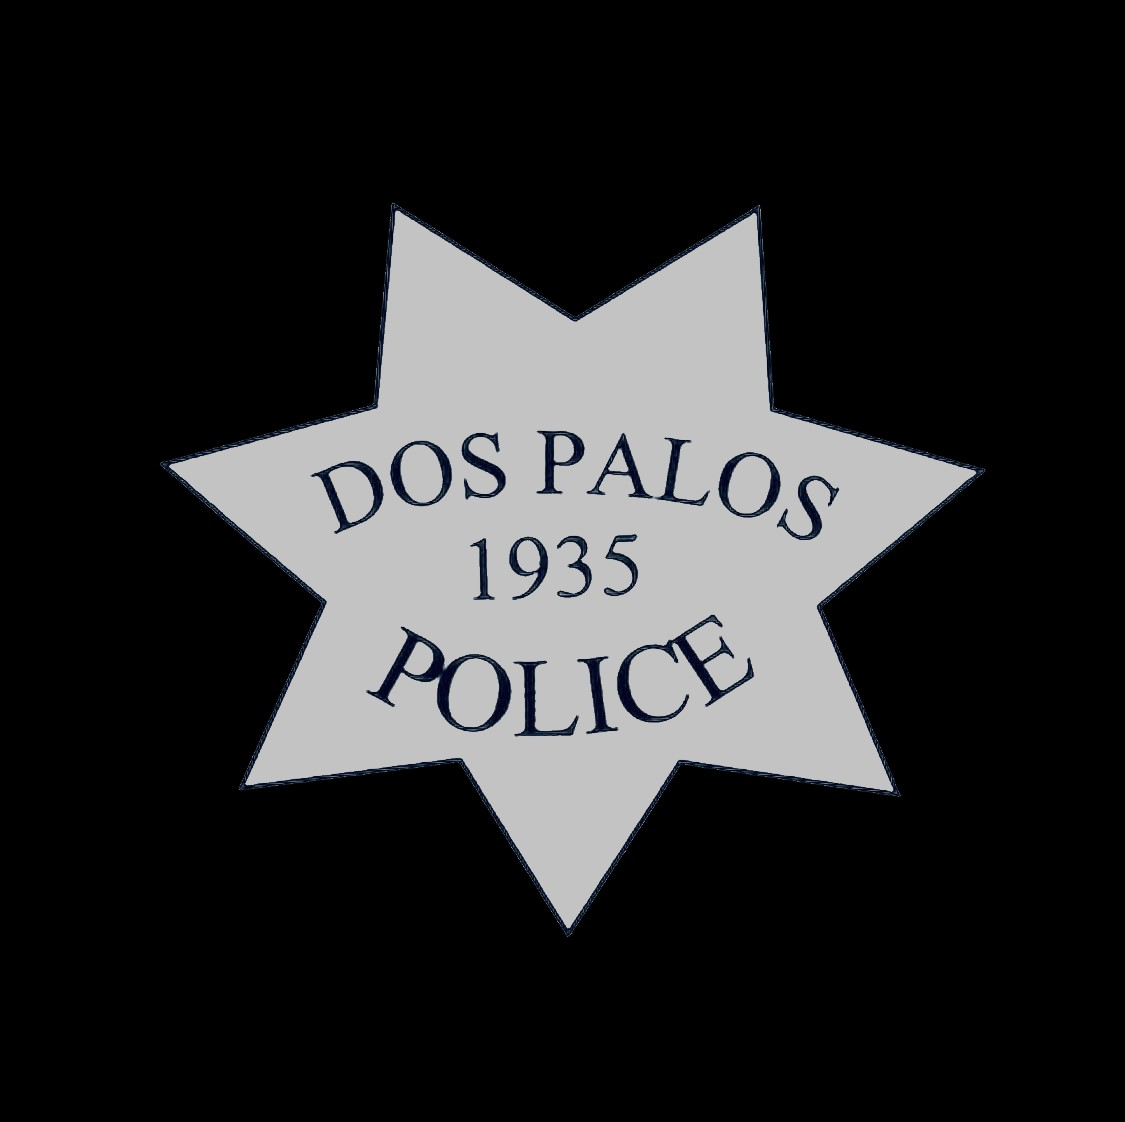 Dos Palos badge art.jpg